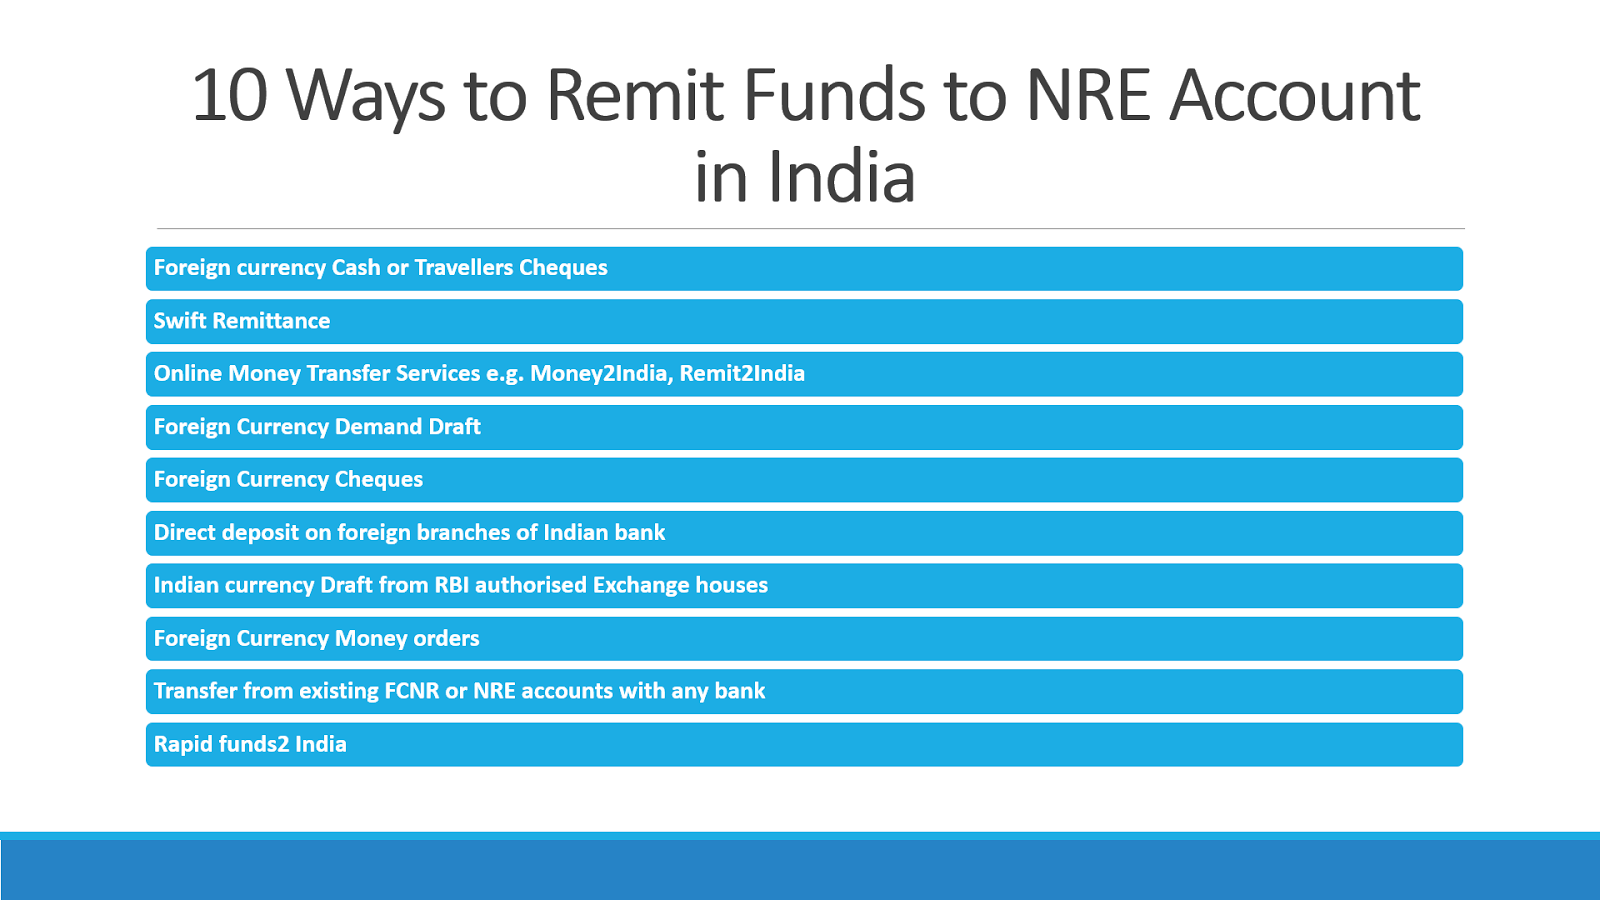 10 Ways to Send Money to NRE account in India | NRI Banking and ...